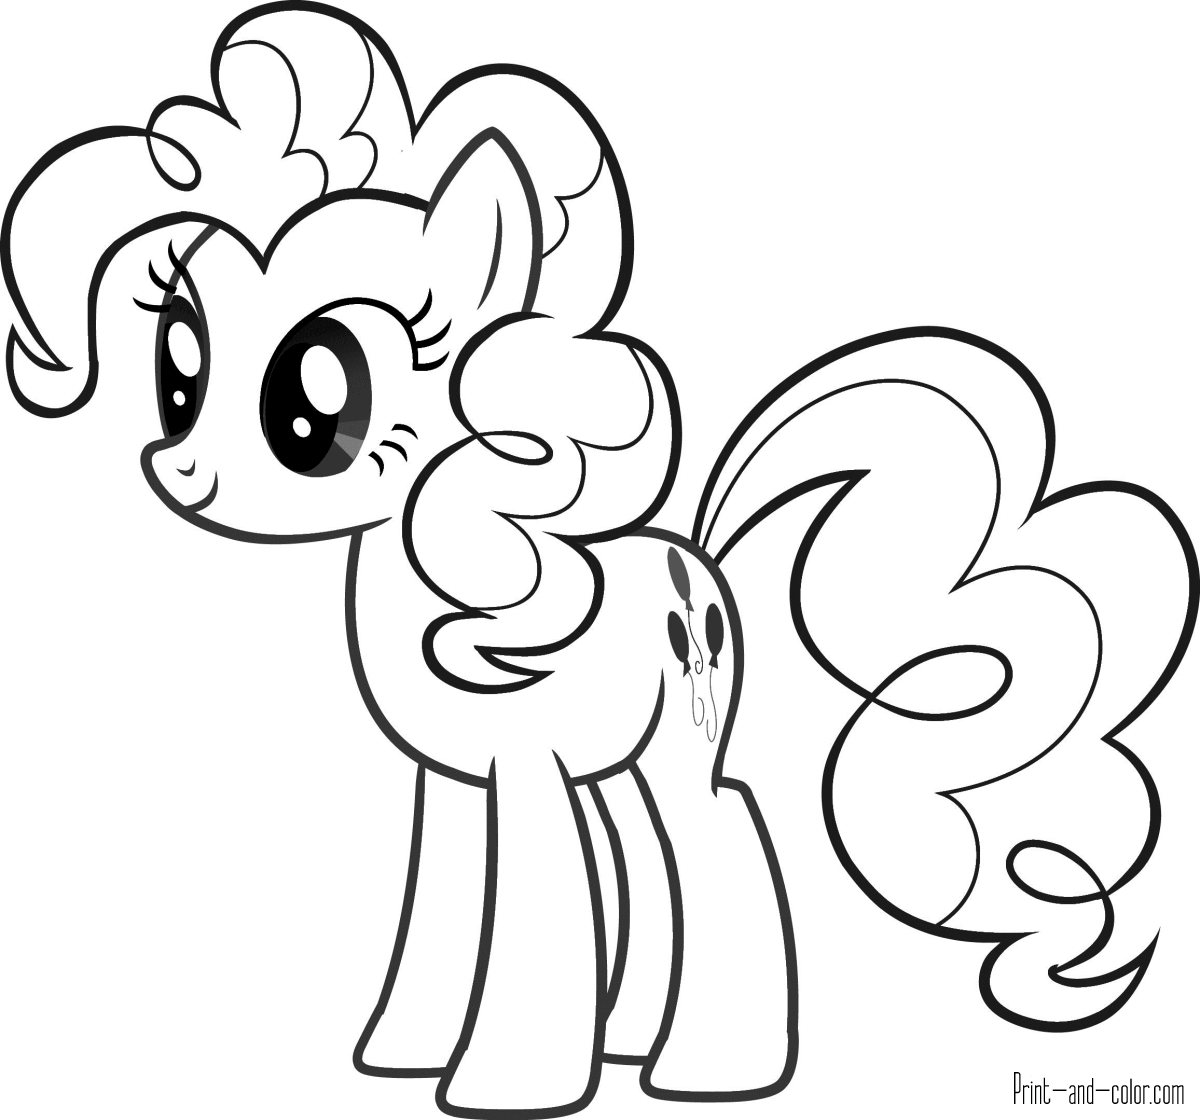 printable my little pony coloring pages my little pony coloring pages print and colorcom little pony my printable coloring pages